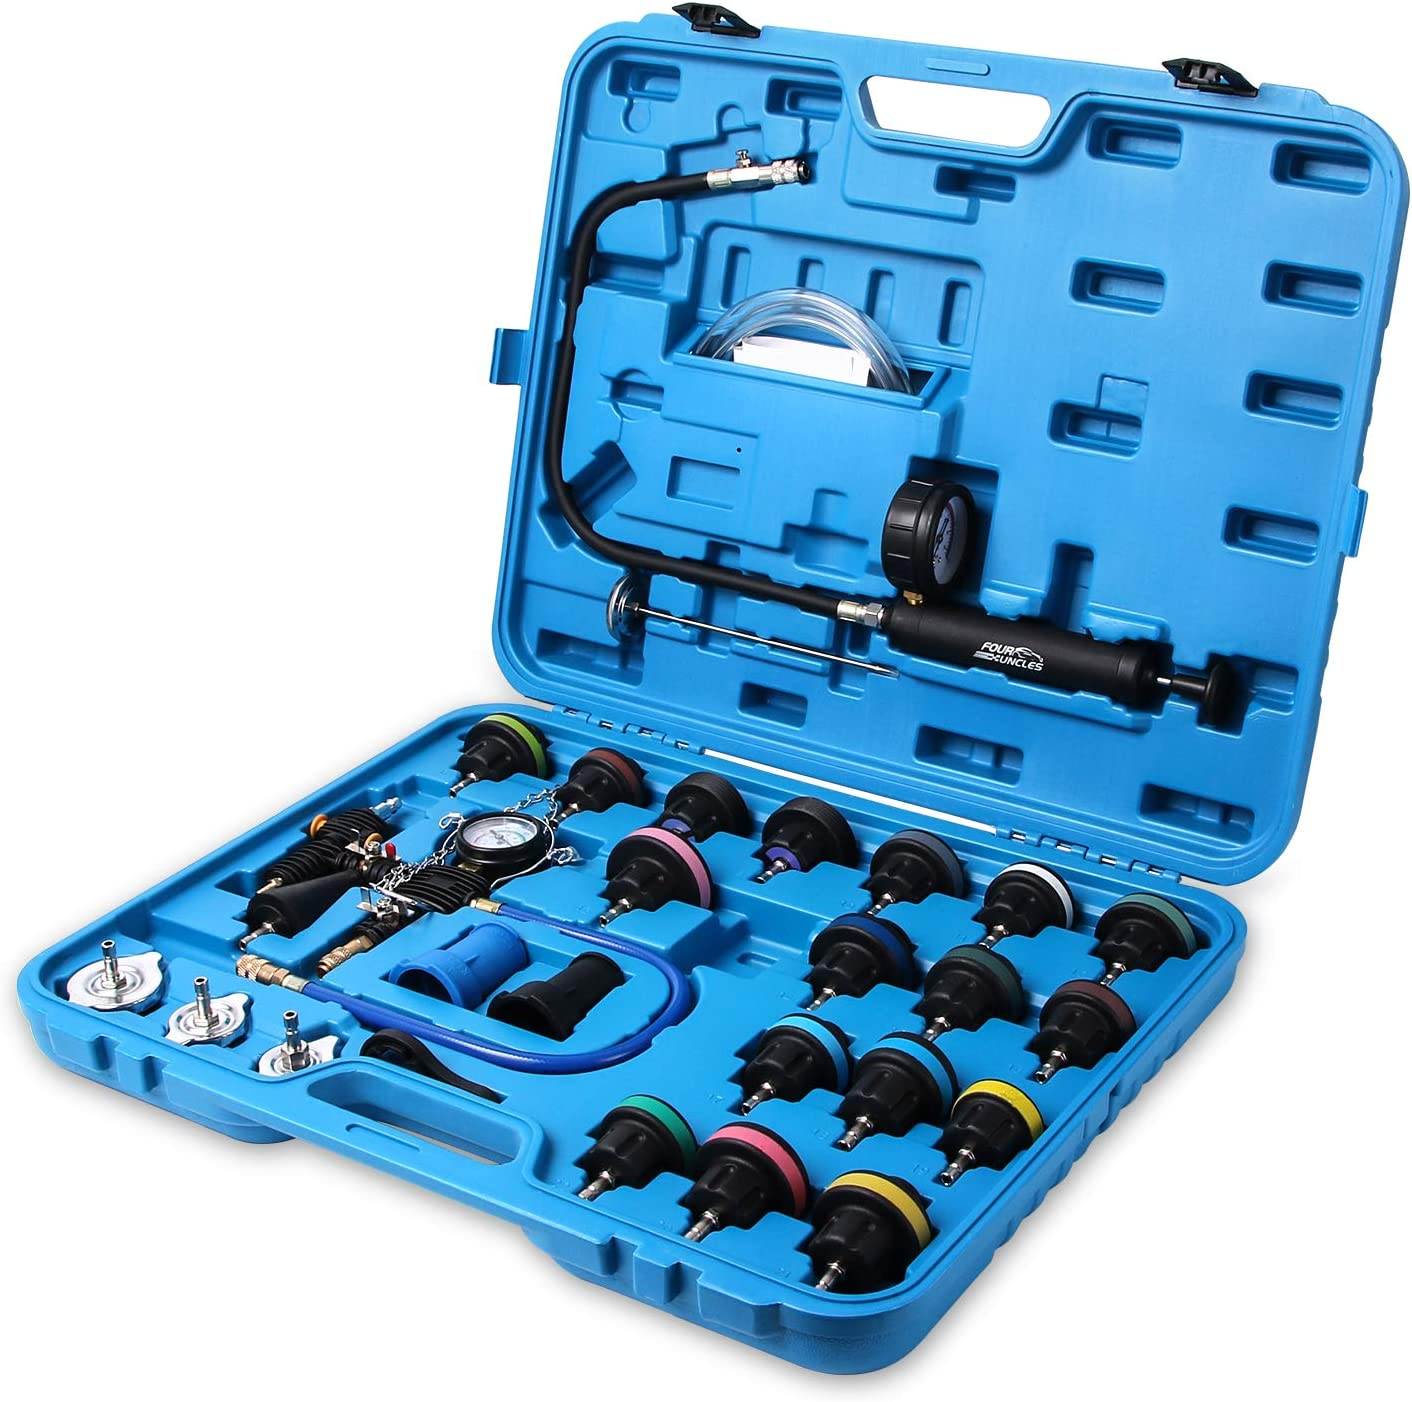 FOUR UNCLES 28 Pieces Radiator Pressure Tester, Coolant Pressure Tester Kit Cooling System Pressure Tester Kit with Carrying Case Blue